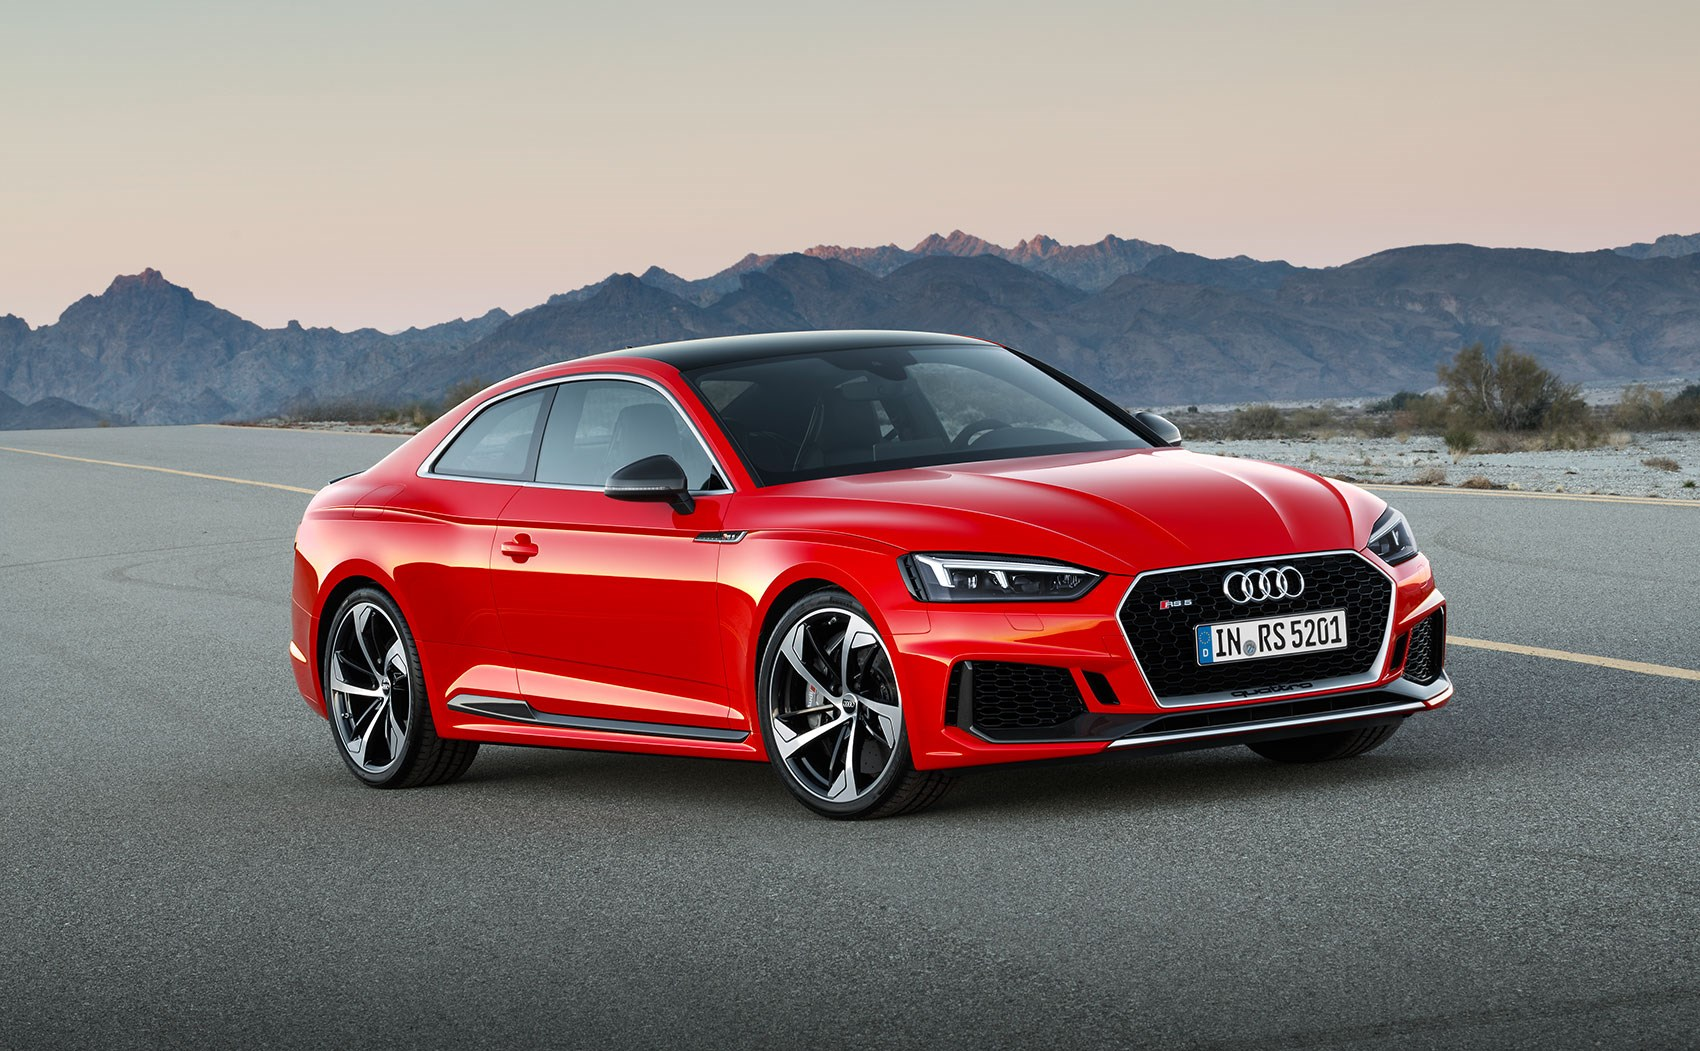 New Audi RS5 Revealed: Audi Sport Delivers Its First Post